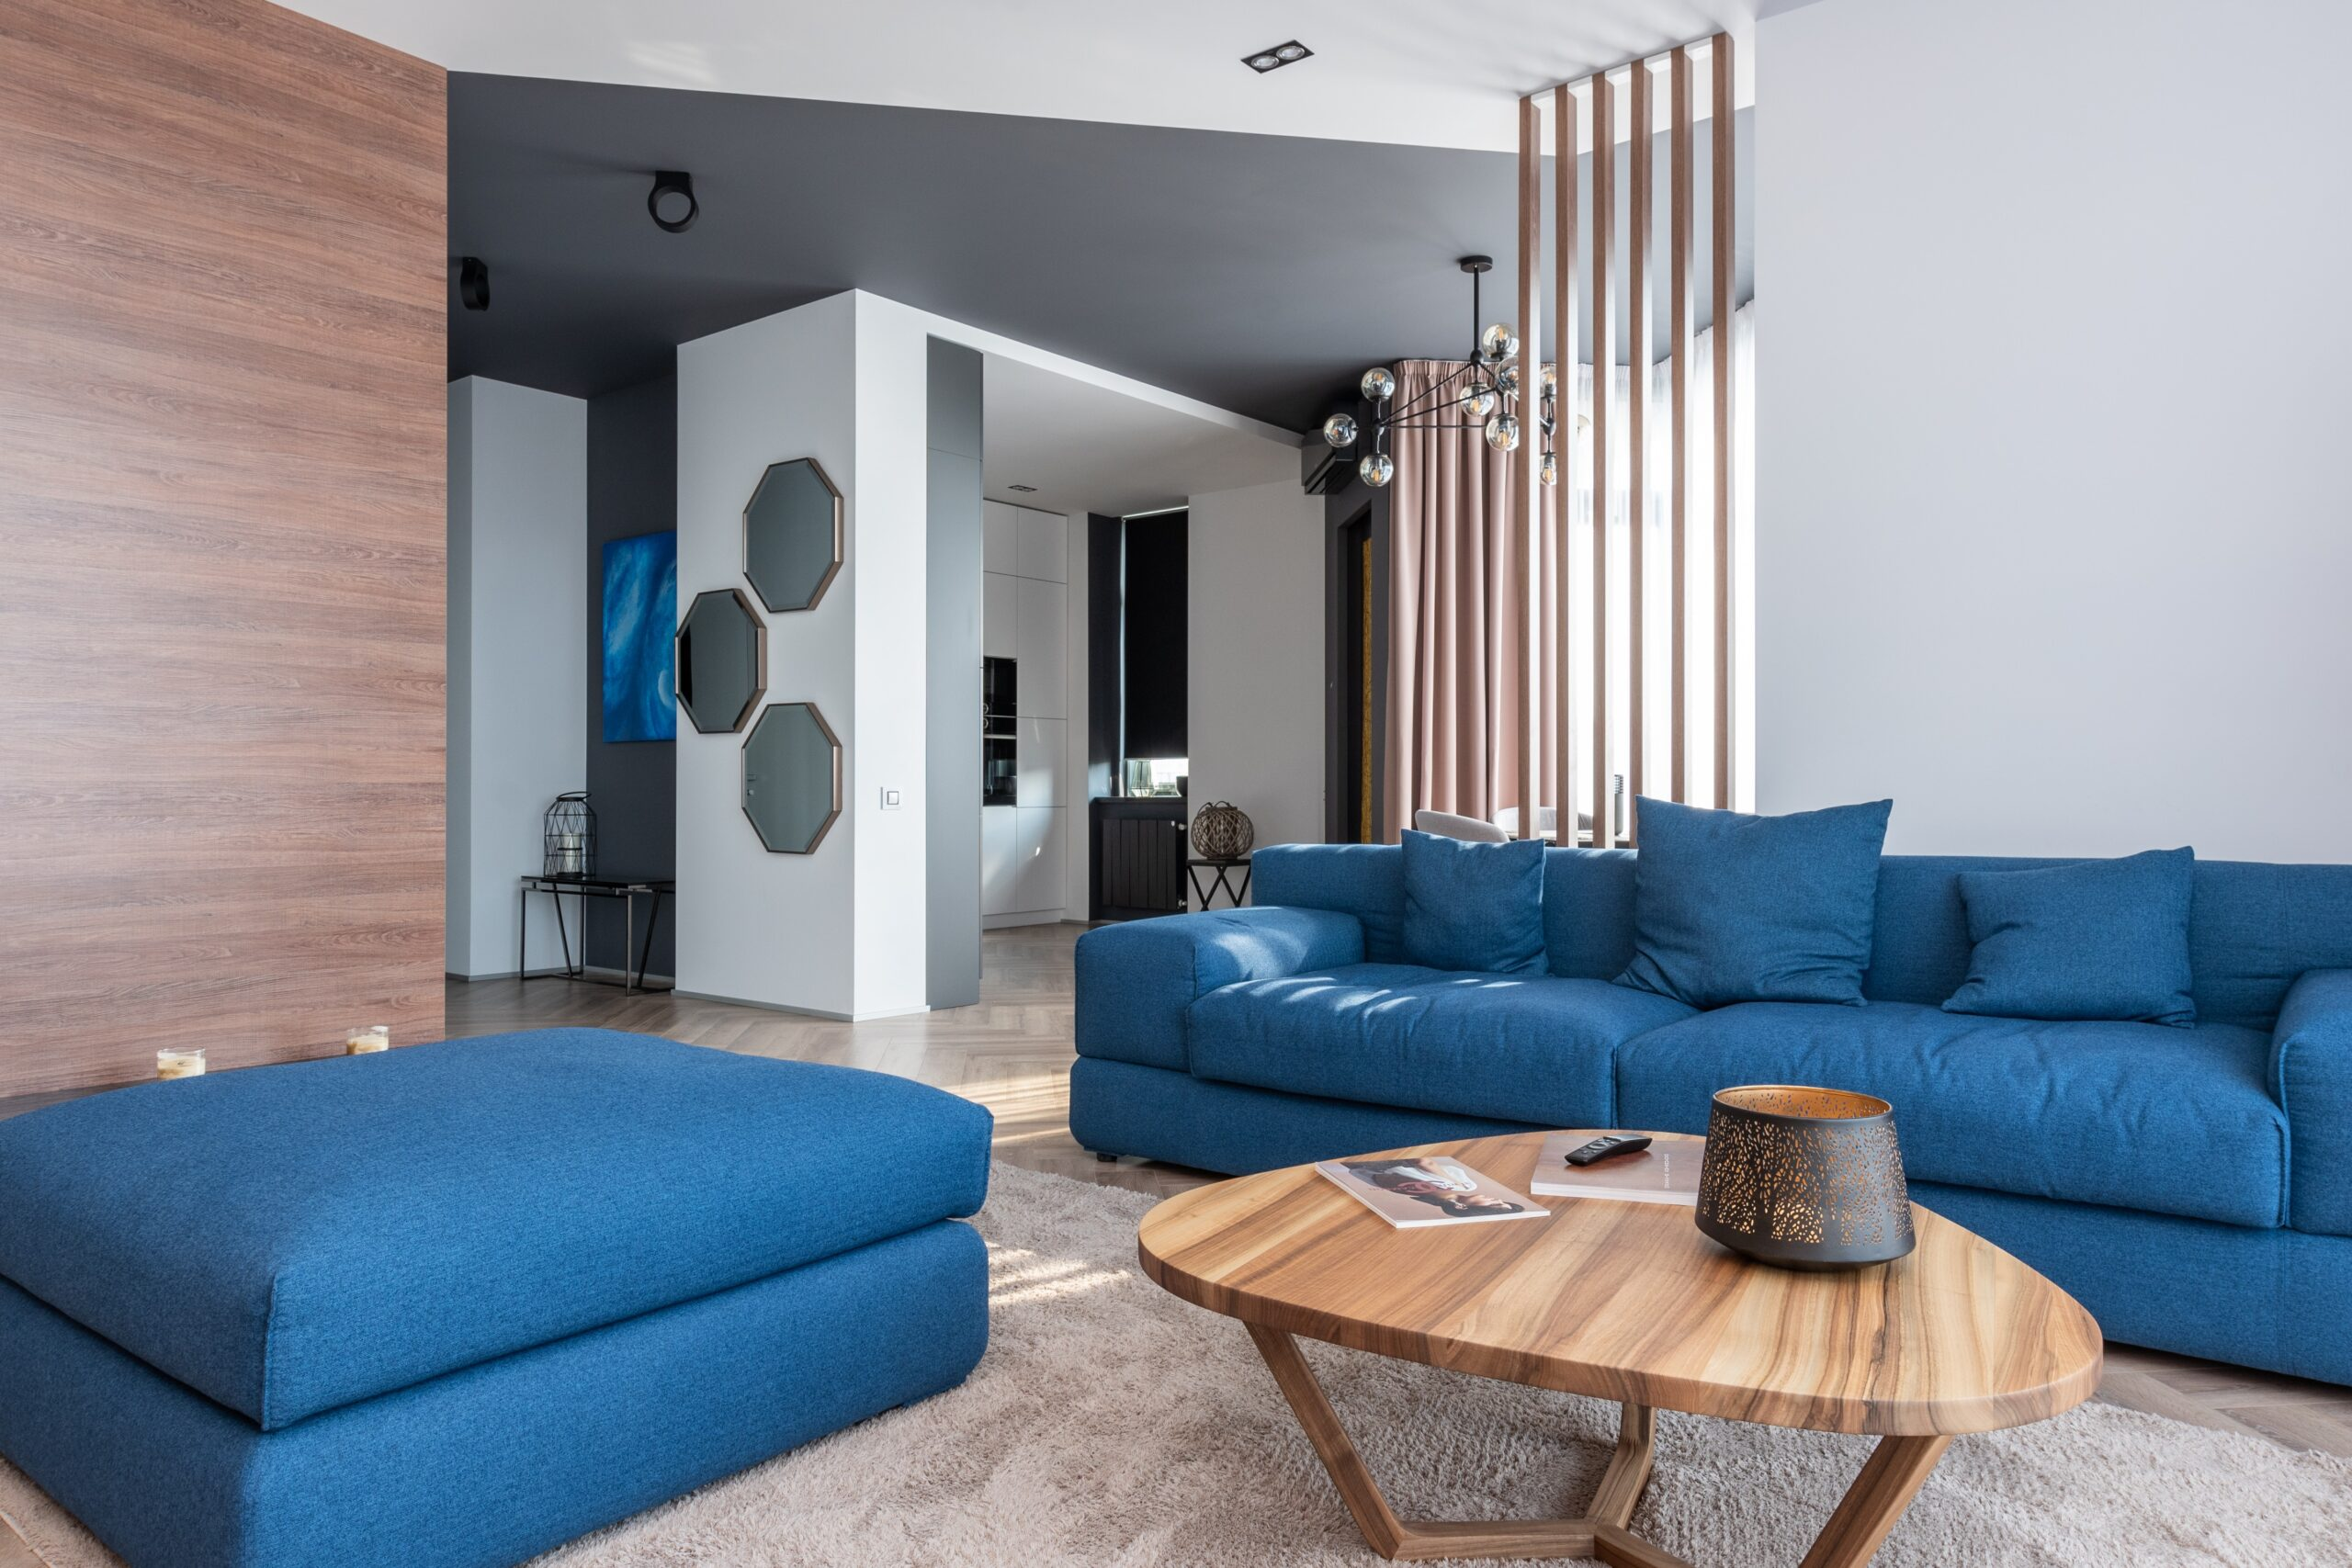 A blue colored sofa in the living room